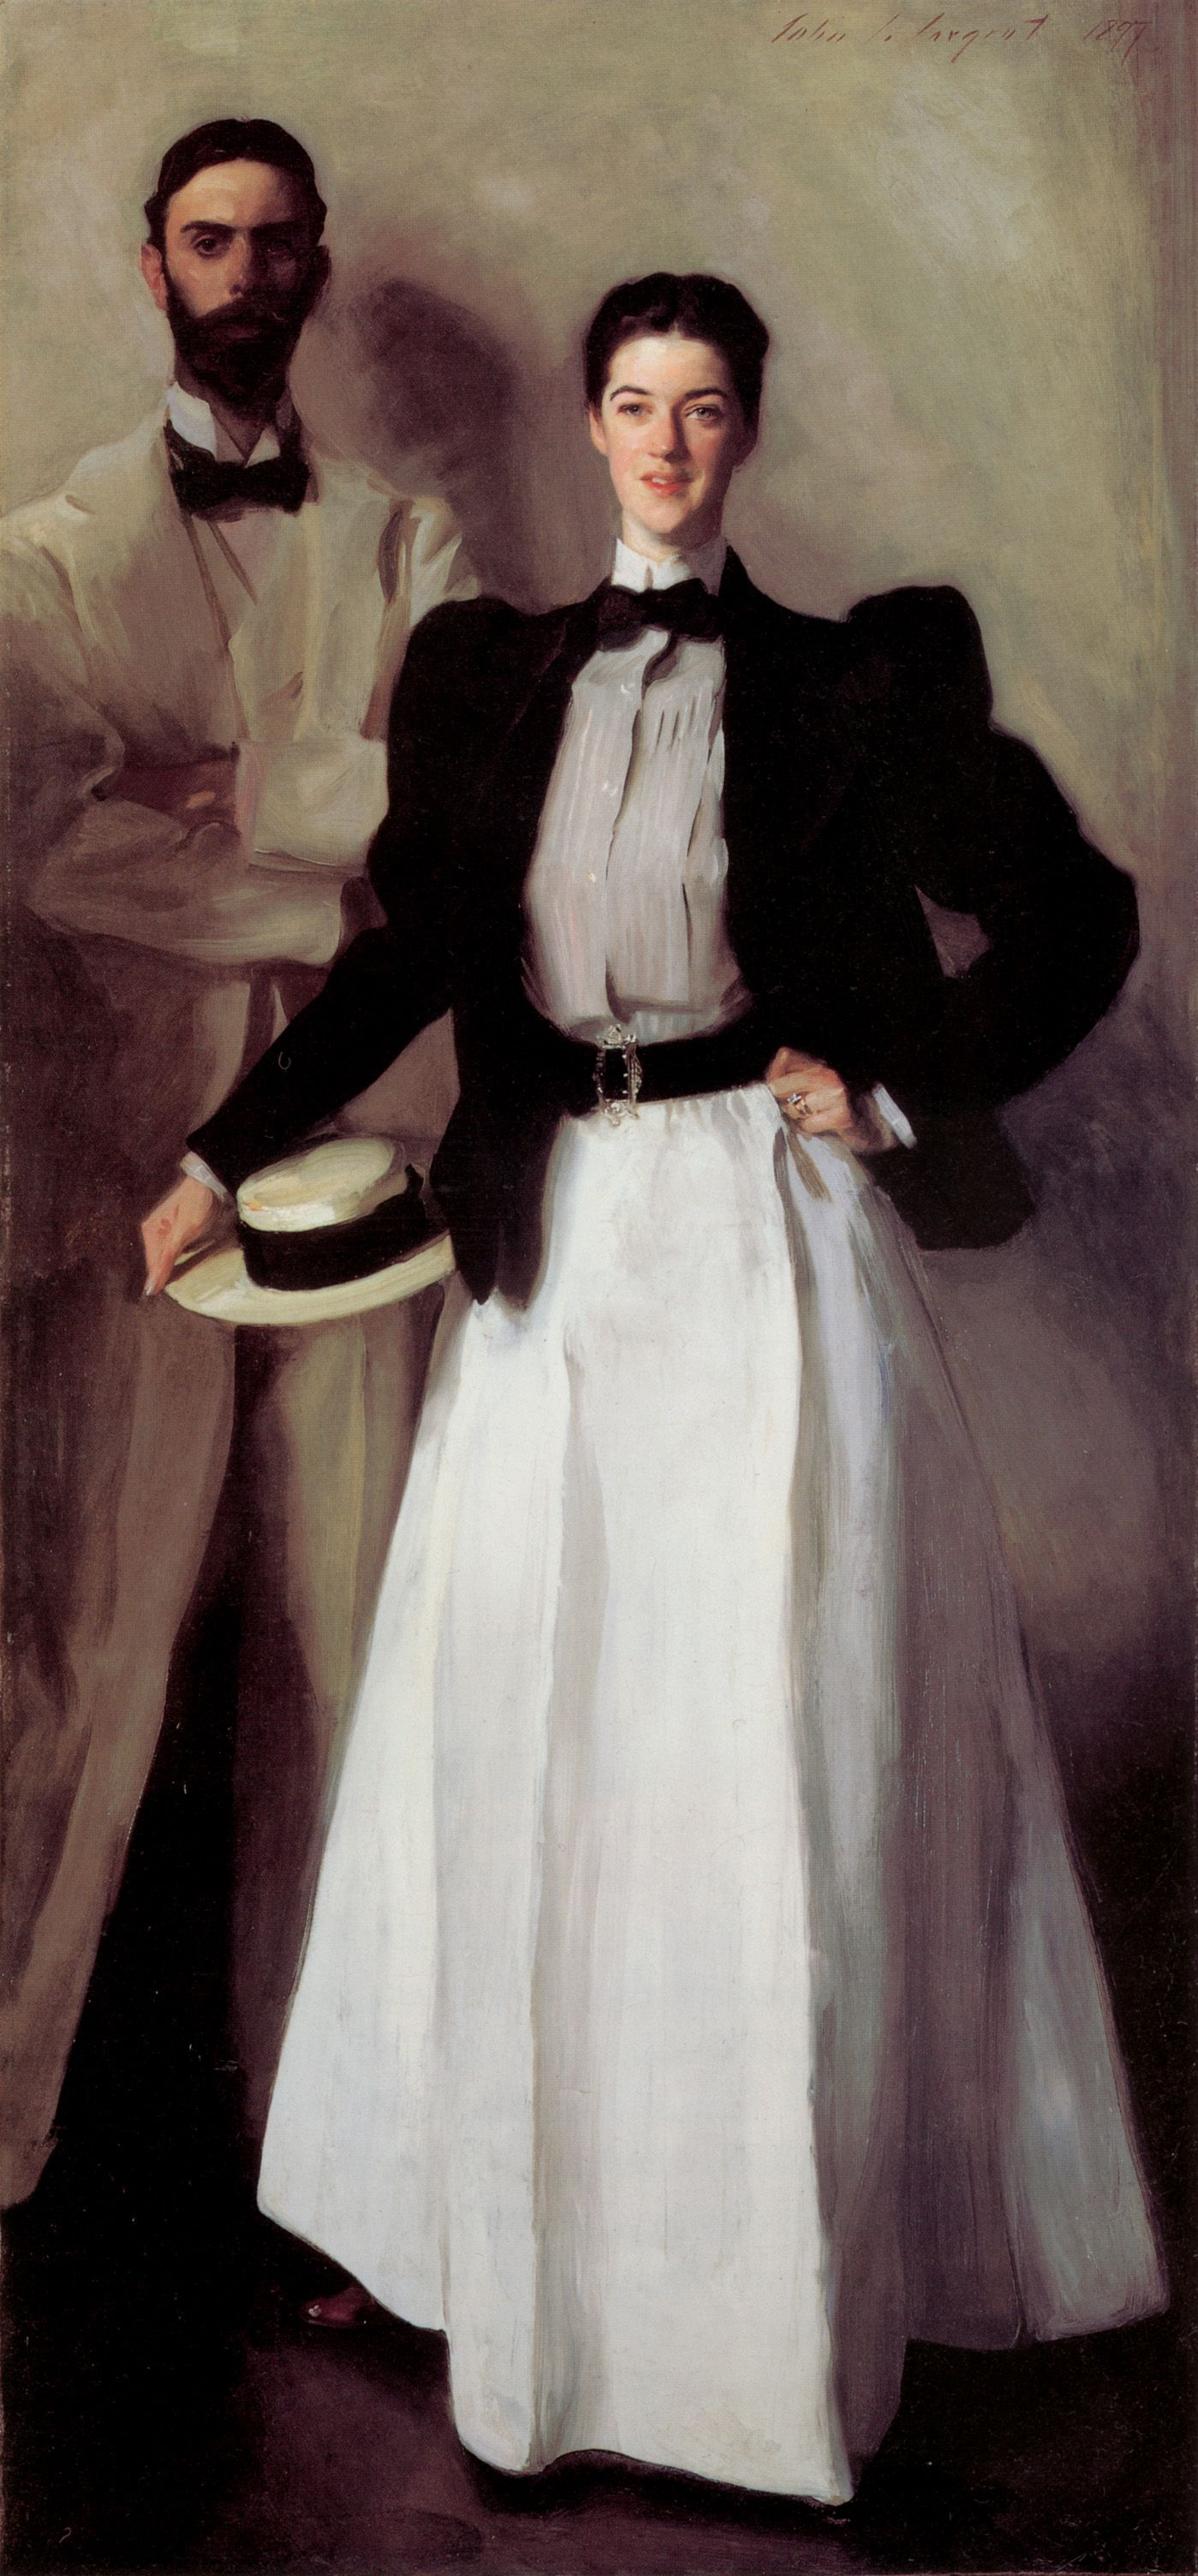 mr and mrs isaac newton phelps stokes by john singer sargent john singer sargent